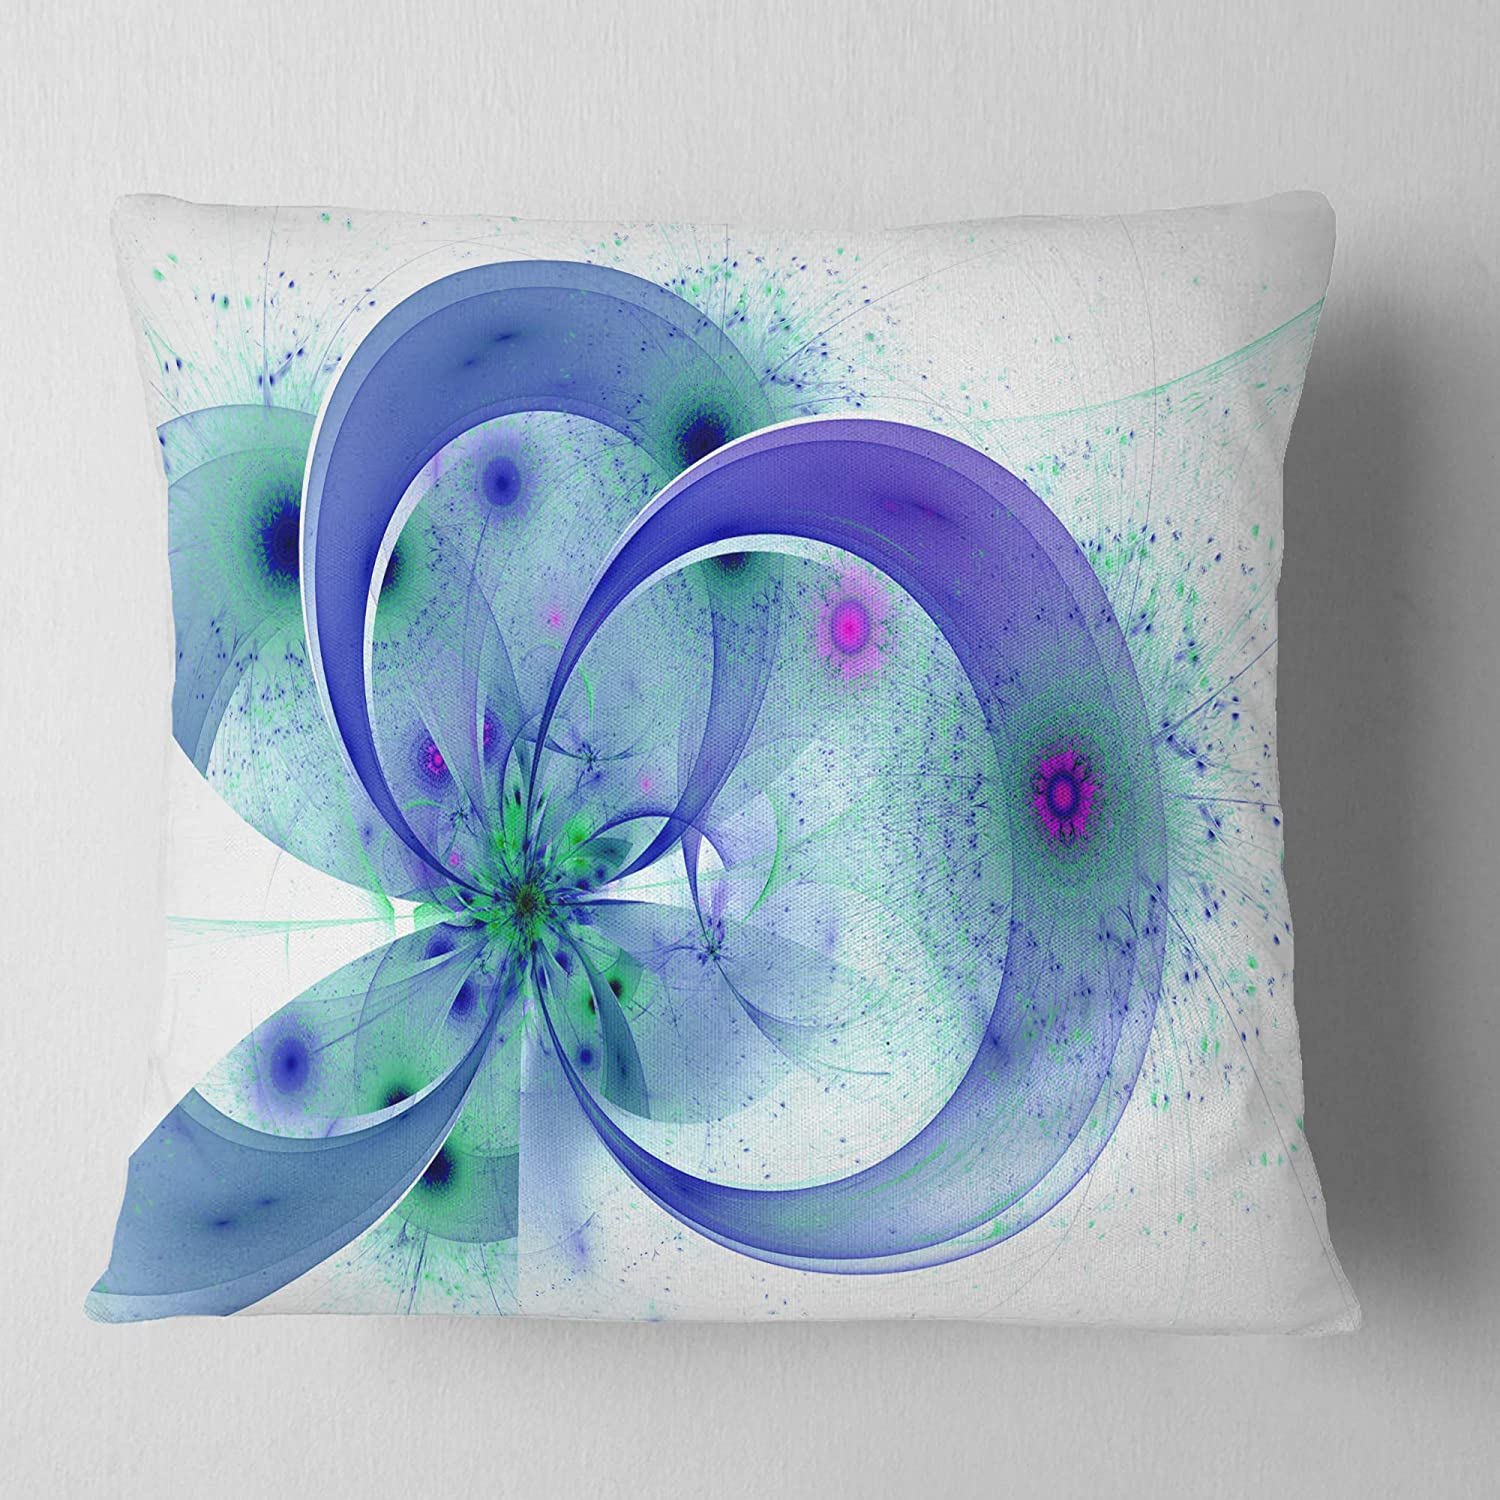 Insert Printed On Both Side Designart CU12174-16-16 Blue Fractal Flower with Curved Petals Floral Cushion Cover for Living Room Sofa Throw Pillow x 16 in